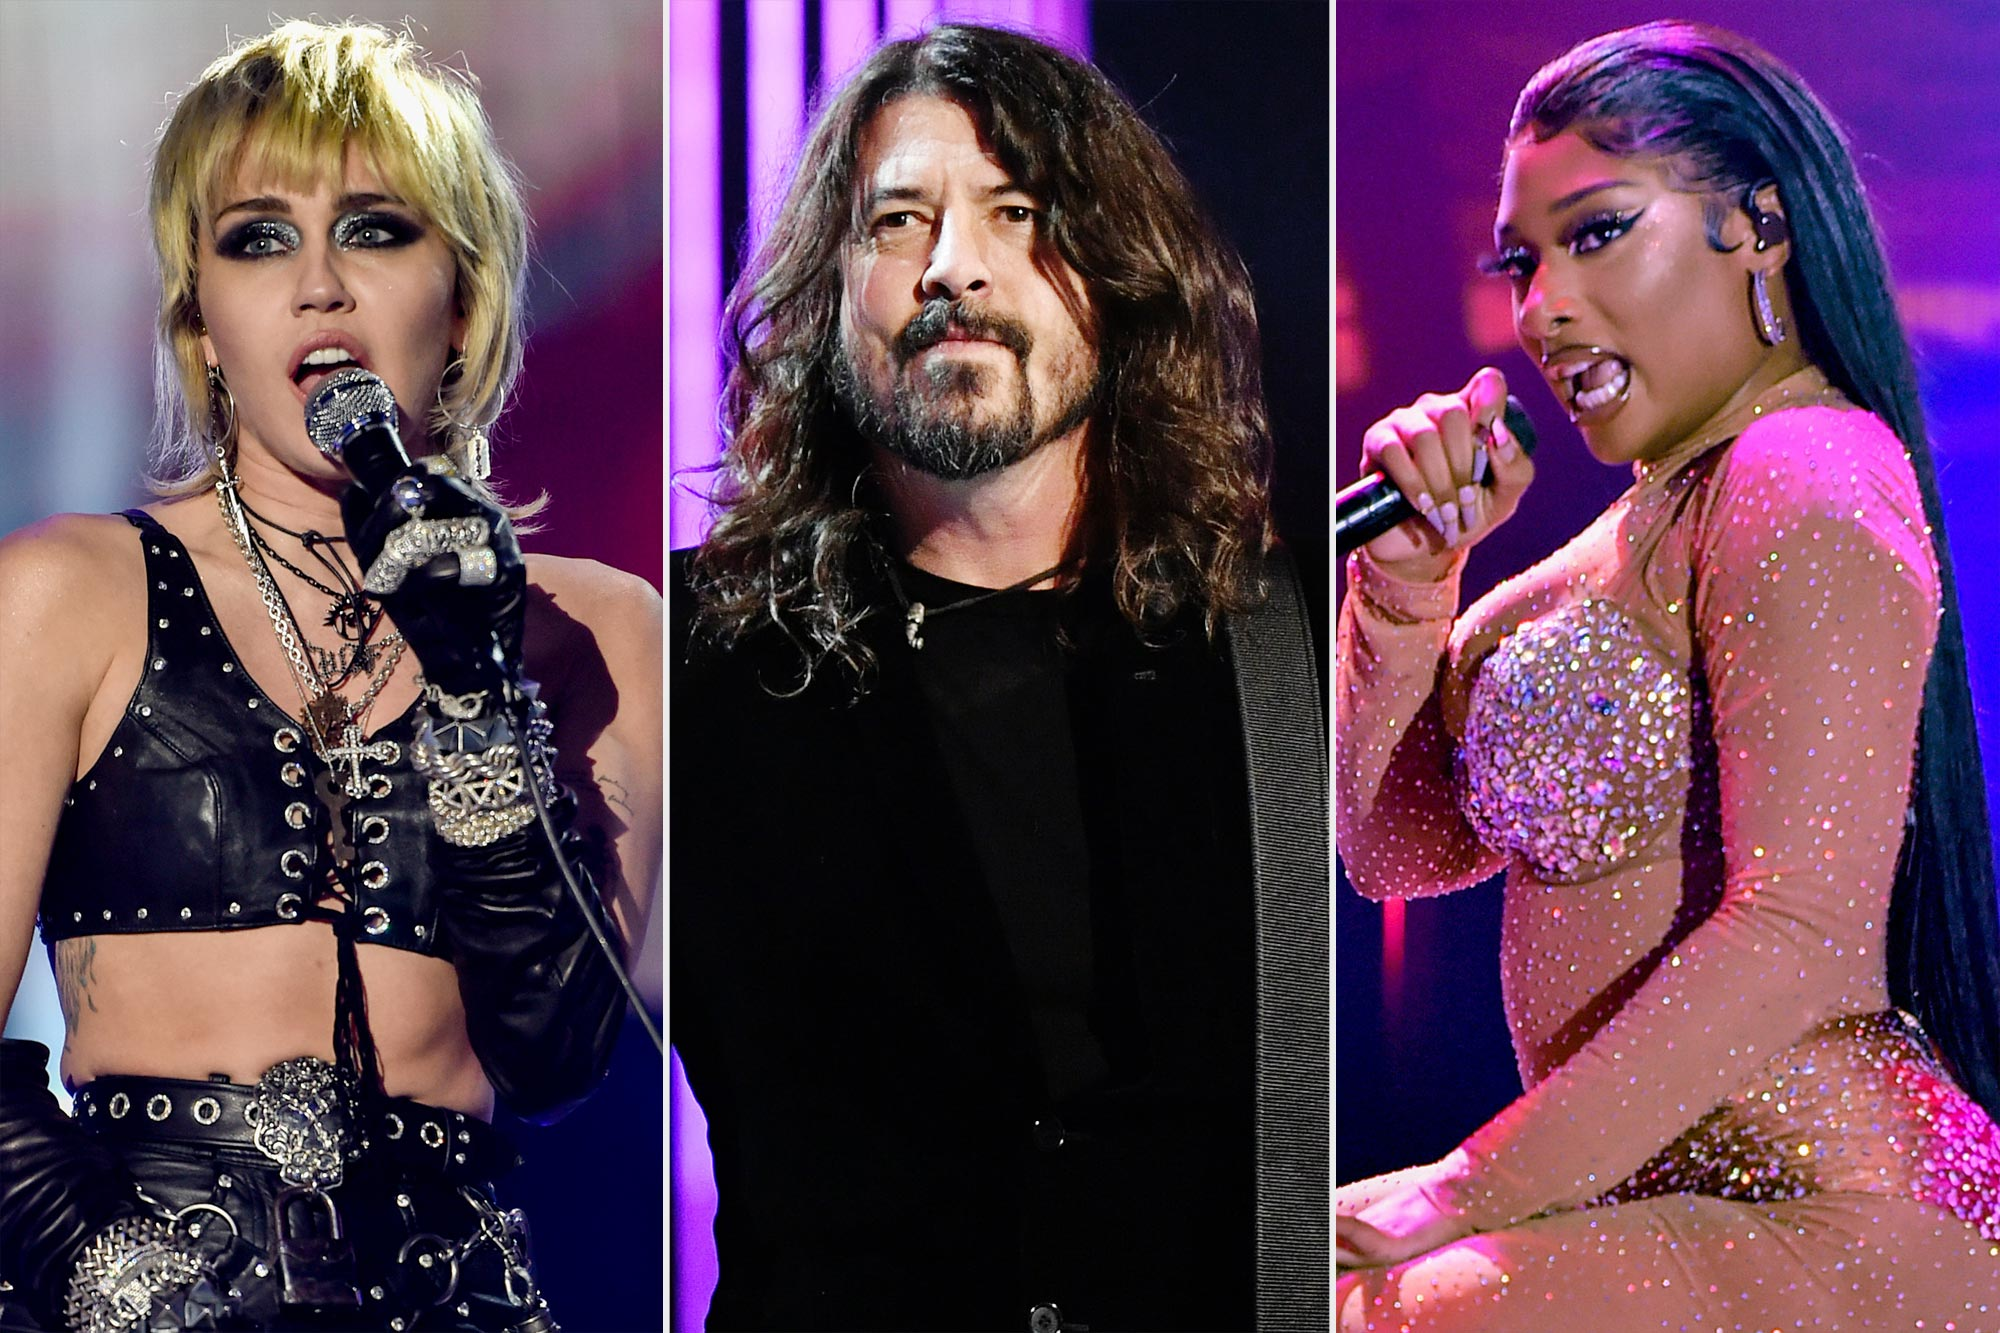 Lollapalooza - Miley Cyrus, Foo Fighters, and Megan Thee Stallion